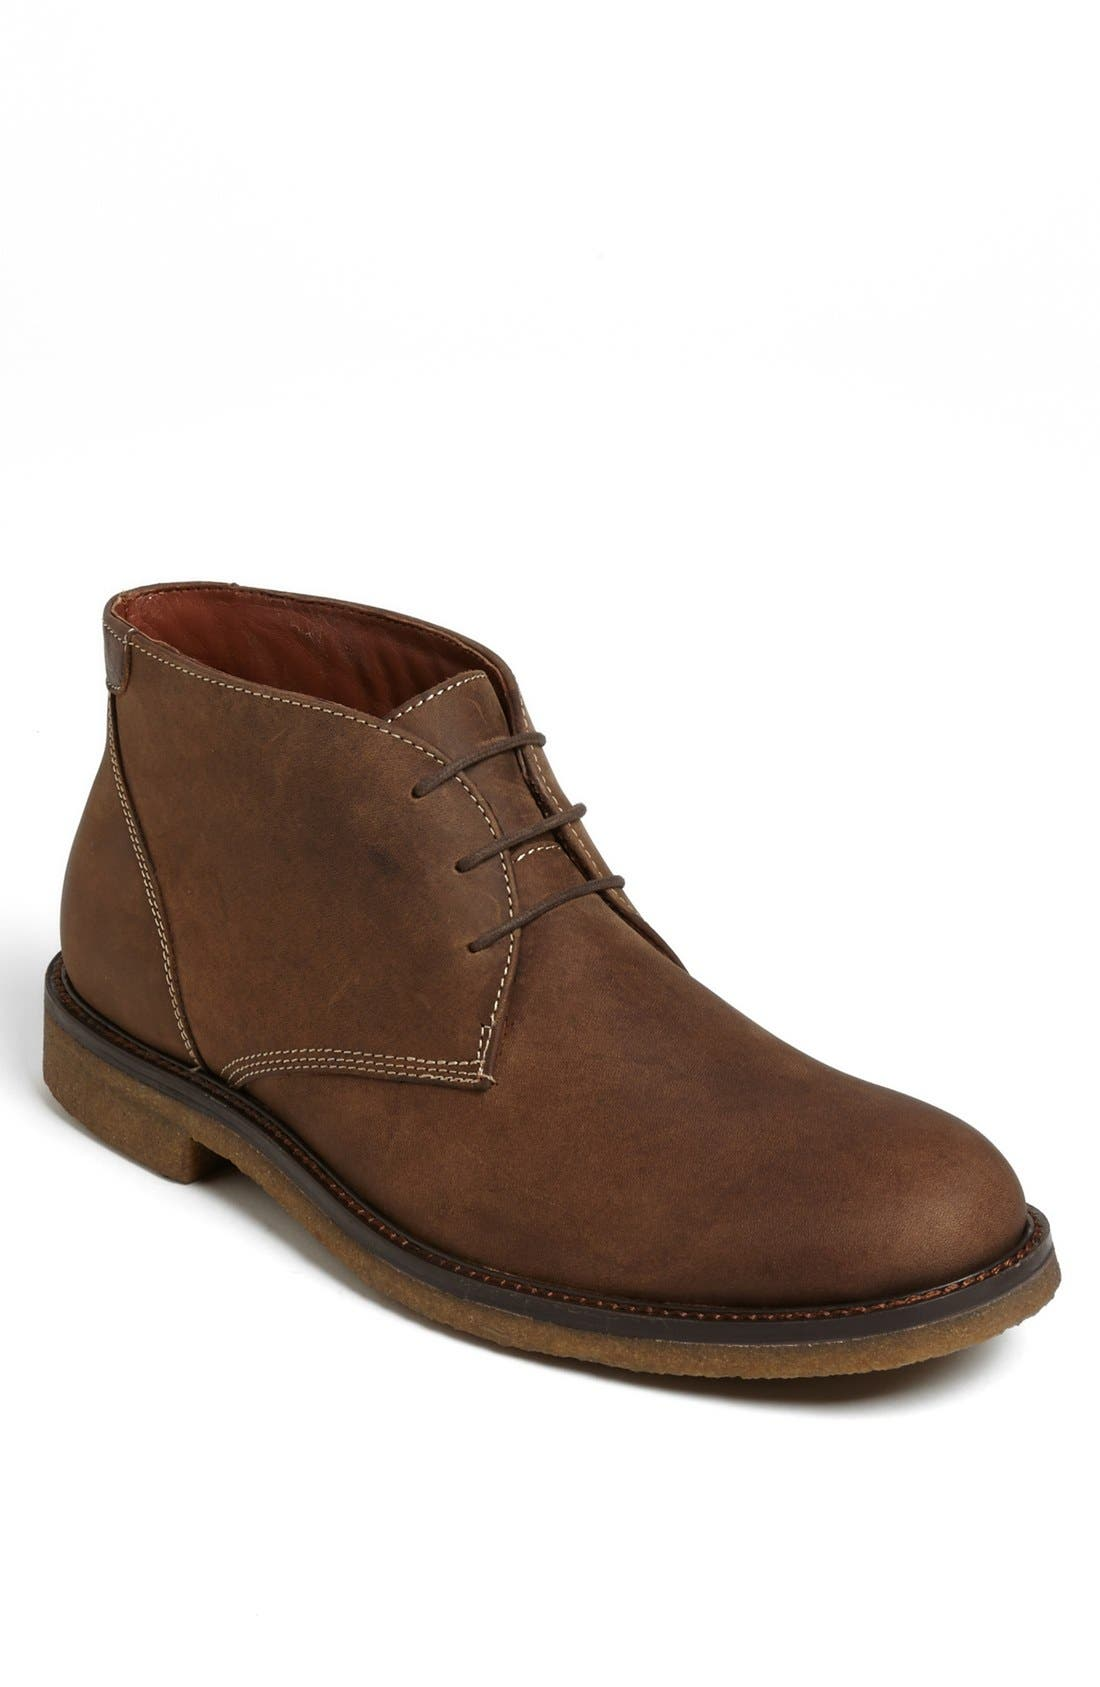 Main Image - Johnston & Murphy 'Copeland' Suede Chukka Boot (Men)